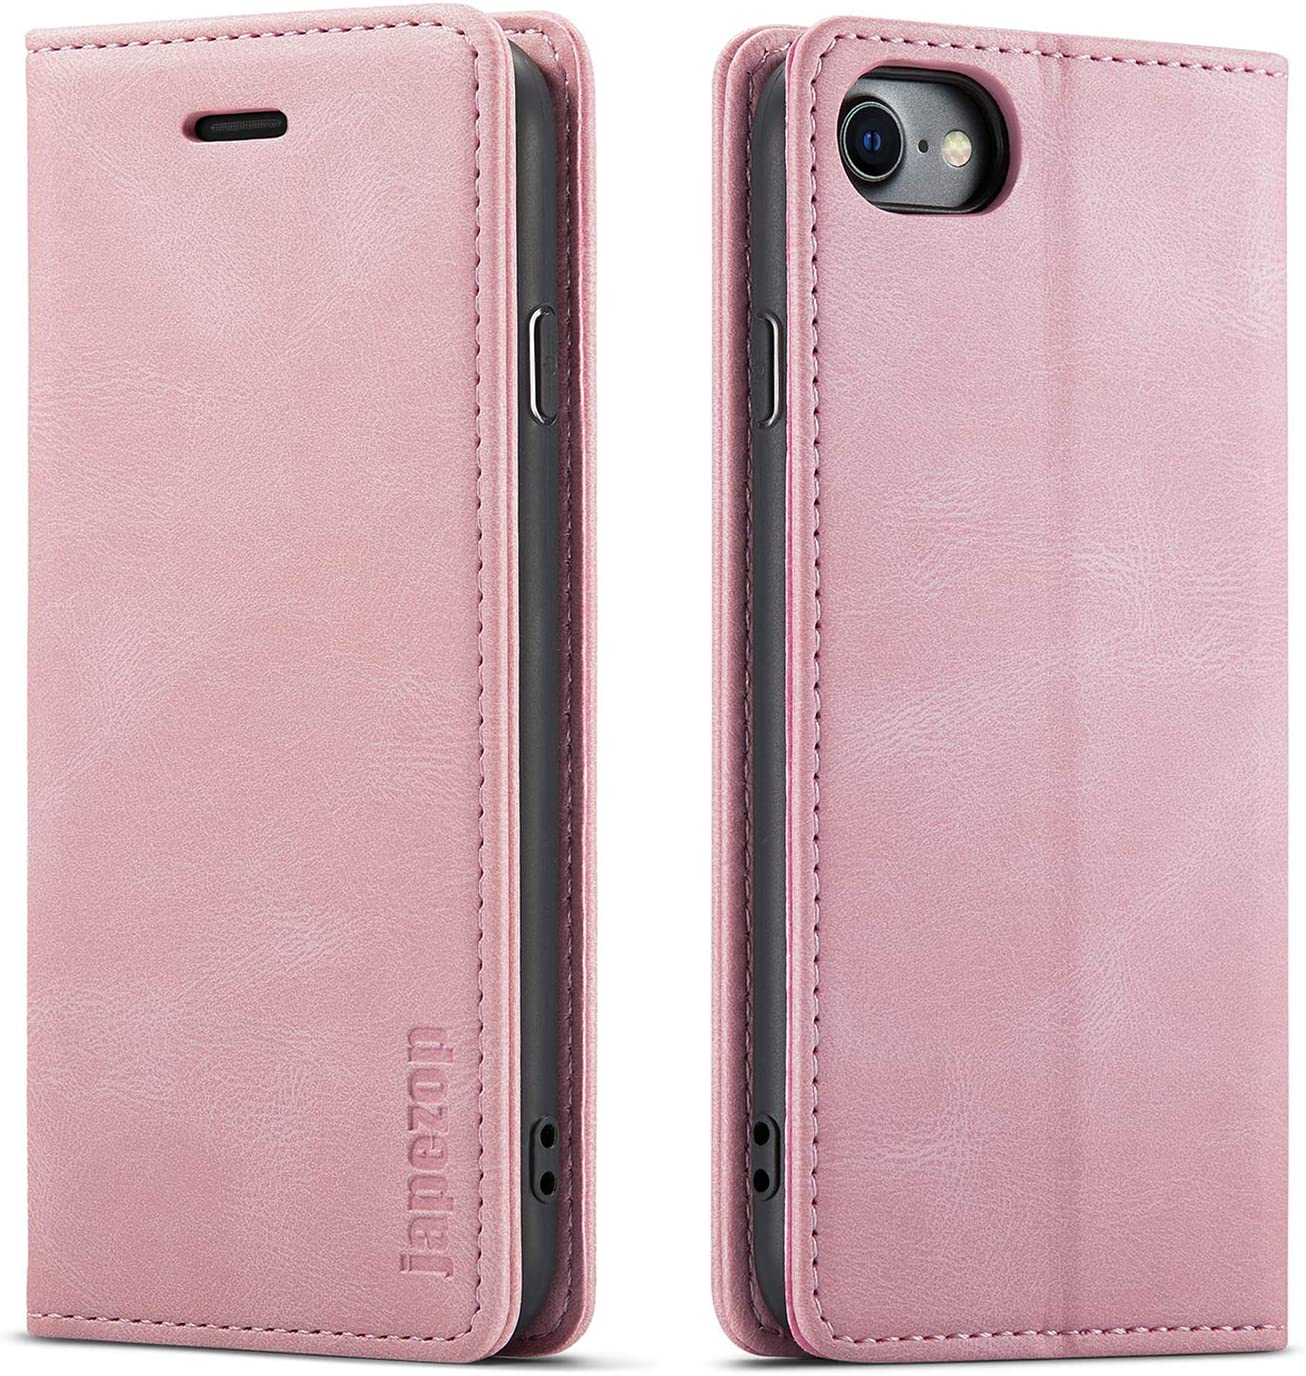 Case for iPhone 8/iPhone 7/iPhone SE2020,[Premium Leather] [Soft TPU] [RFID Blocking][Card Slots] [Magnetic Kickstand] Flip Wallet Case for iPhone 7/iPhone 8 / iPhone SE (2nd) 4.7 inch(Pink)